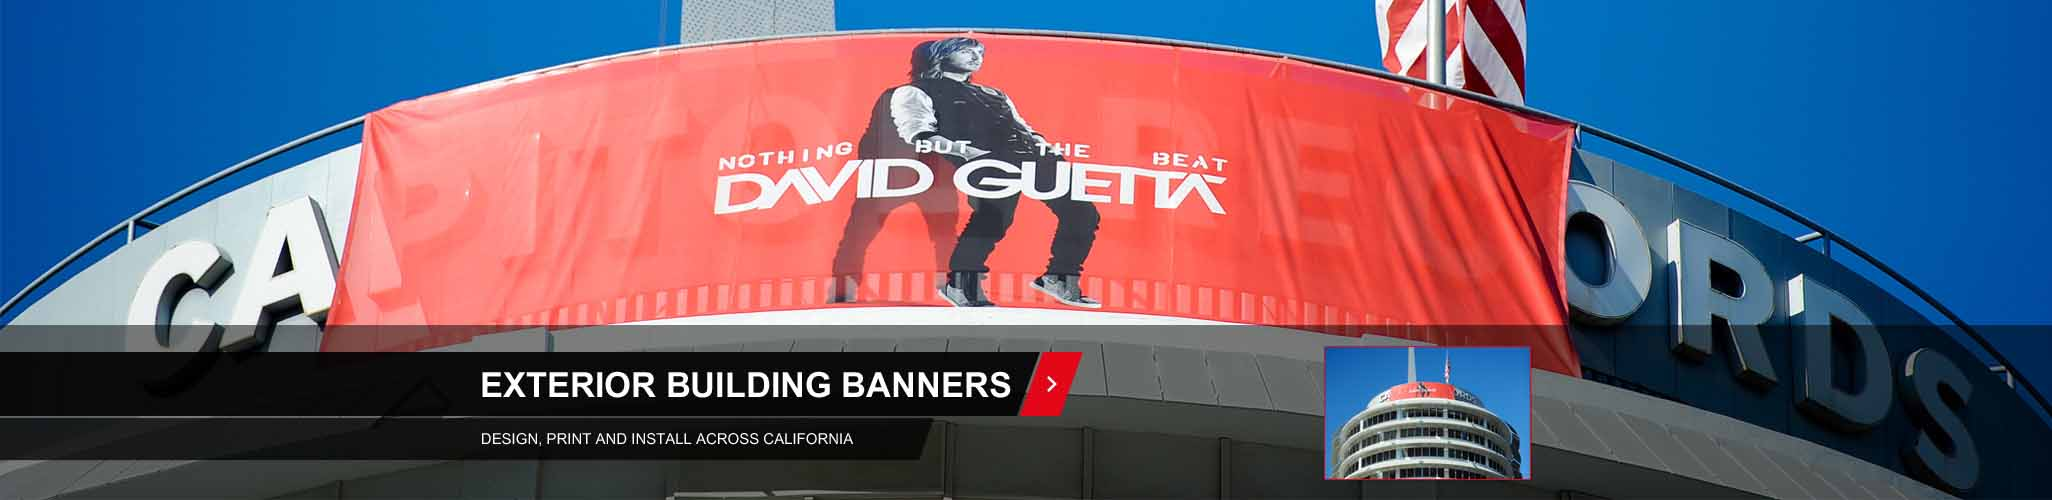 exterior_building_banners